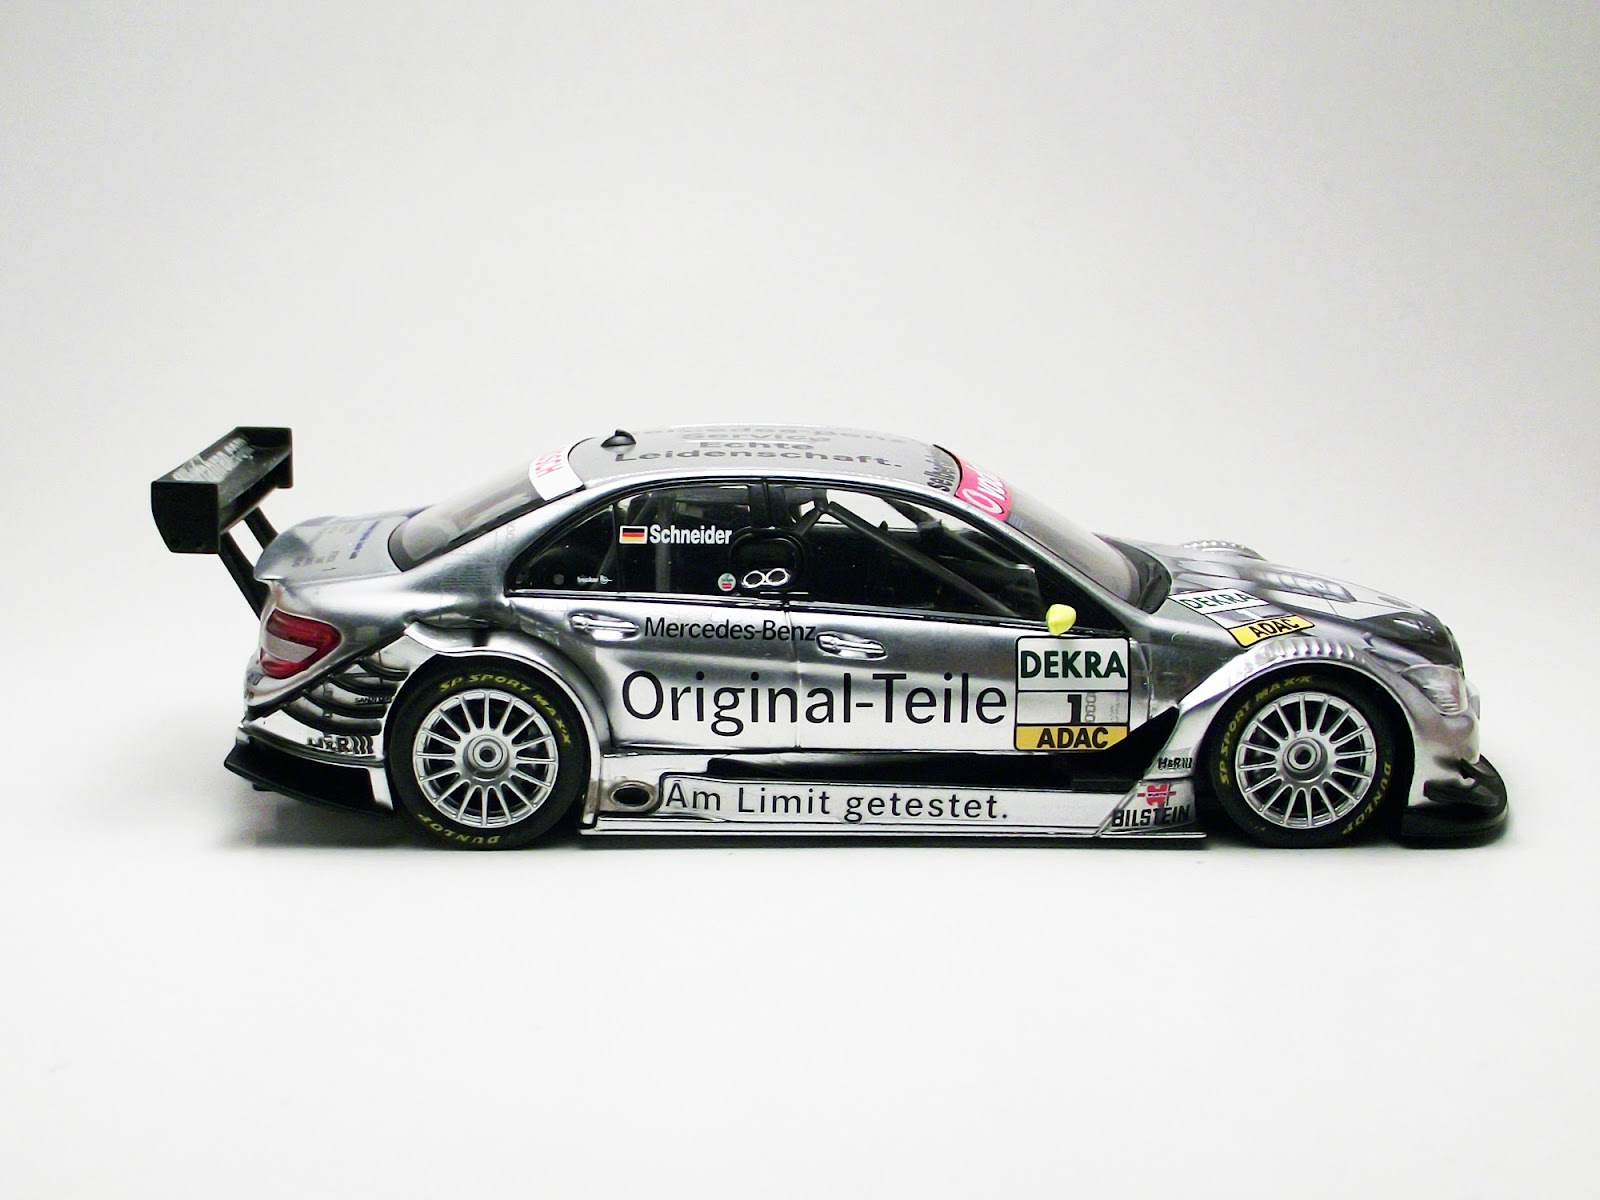 Diecast 1 43 mercedes benz c klasse amg dtm original for Diecast mercedes benz